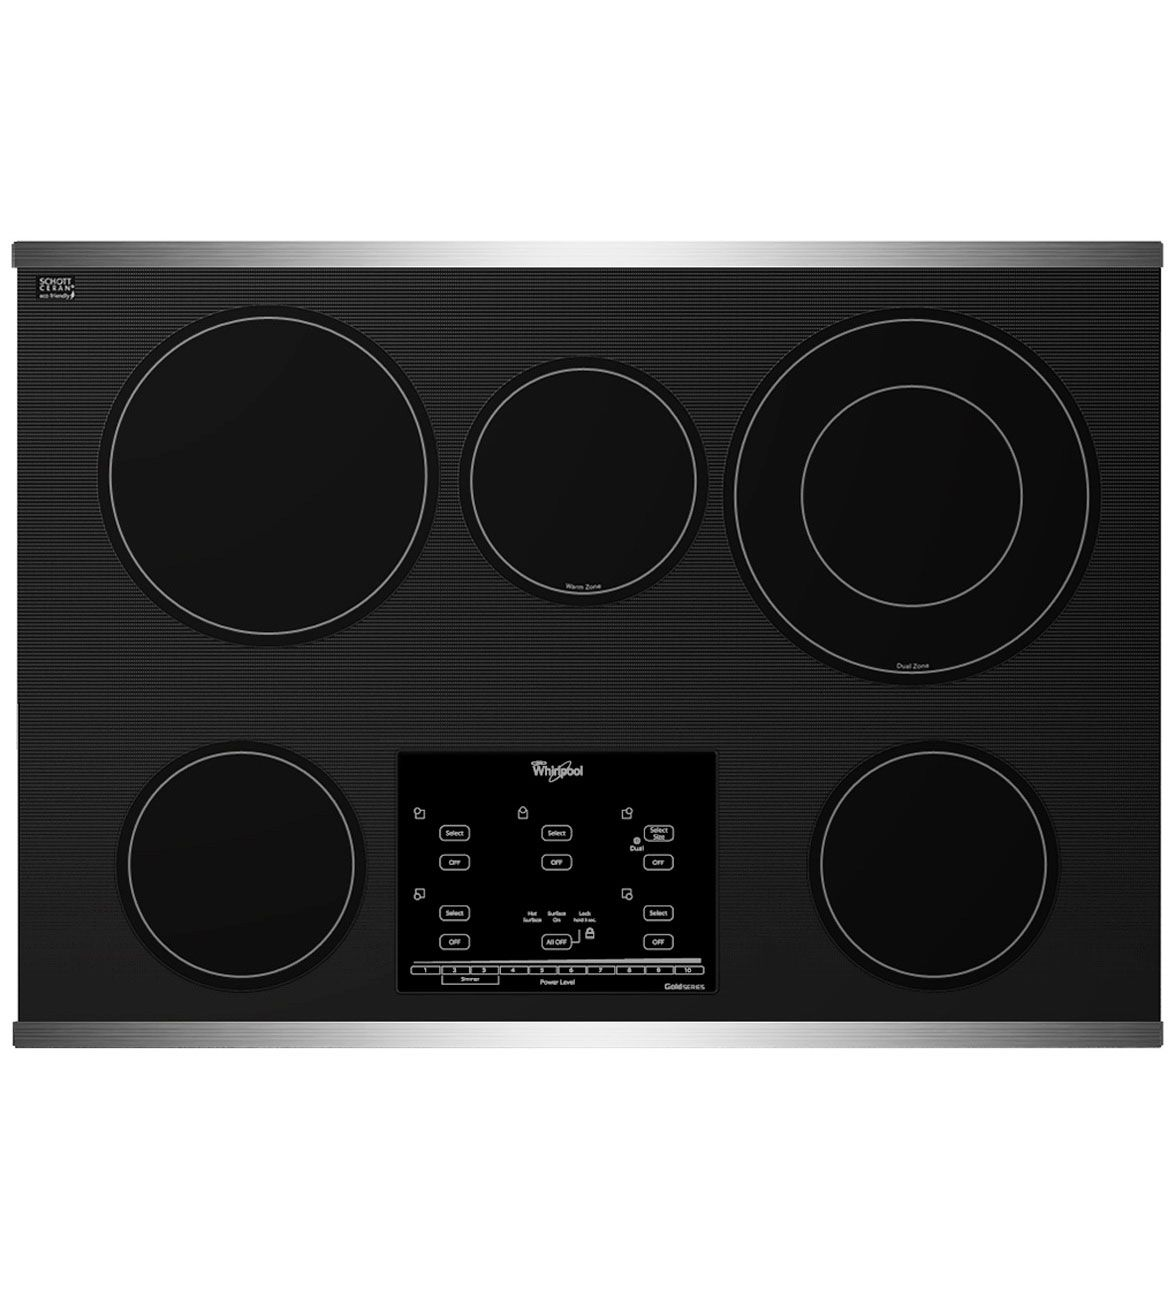 Gold series 30inch electric ceramic glass cooktop with